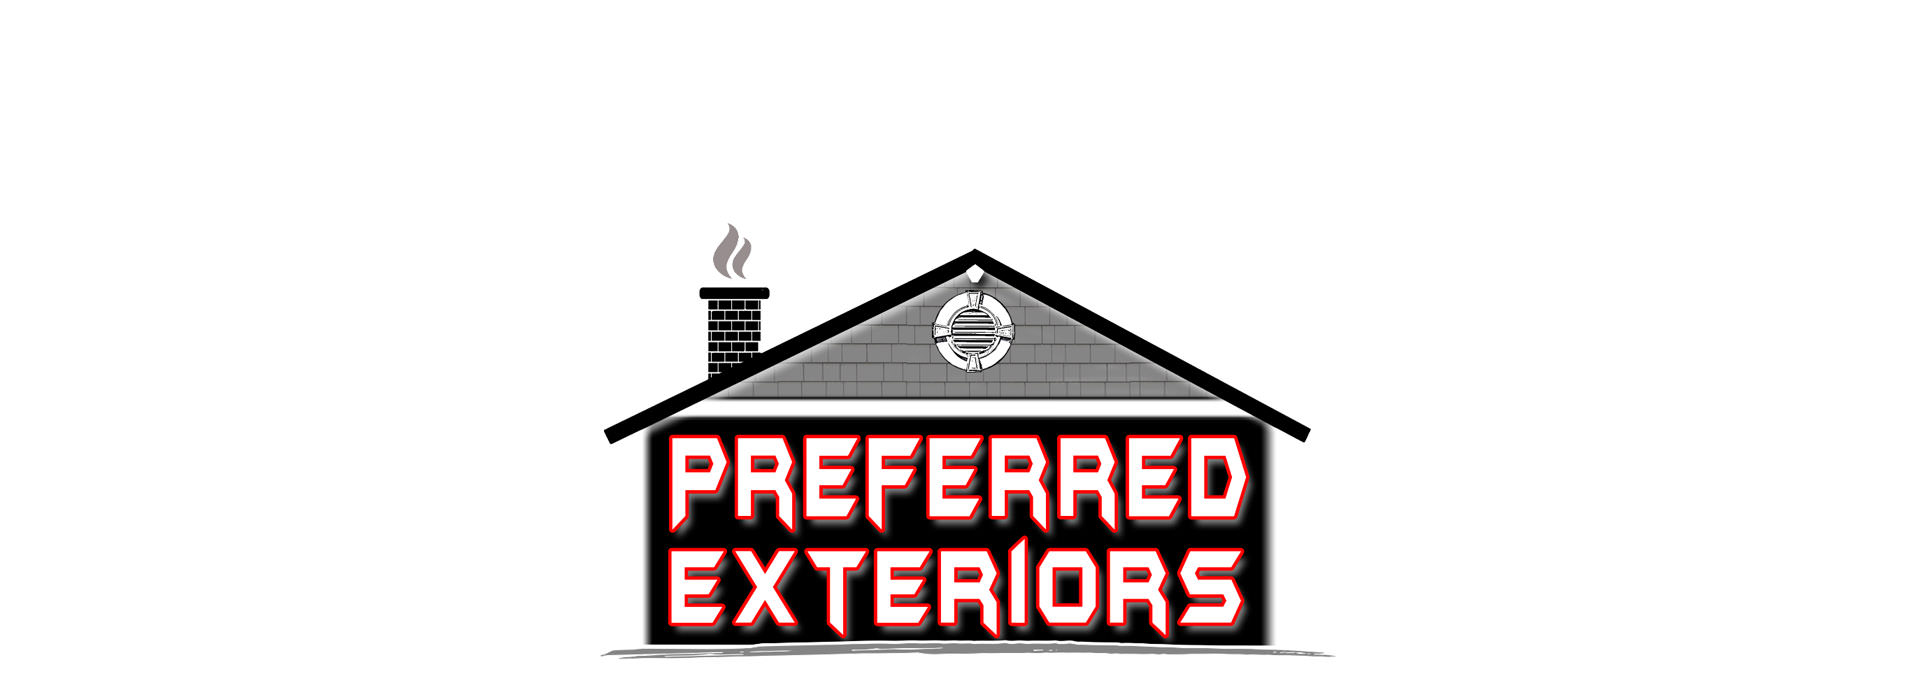 best affordable siding contractors Clark County Vancouver WA